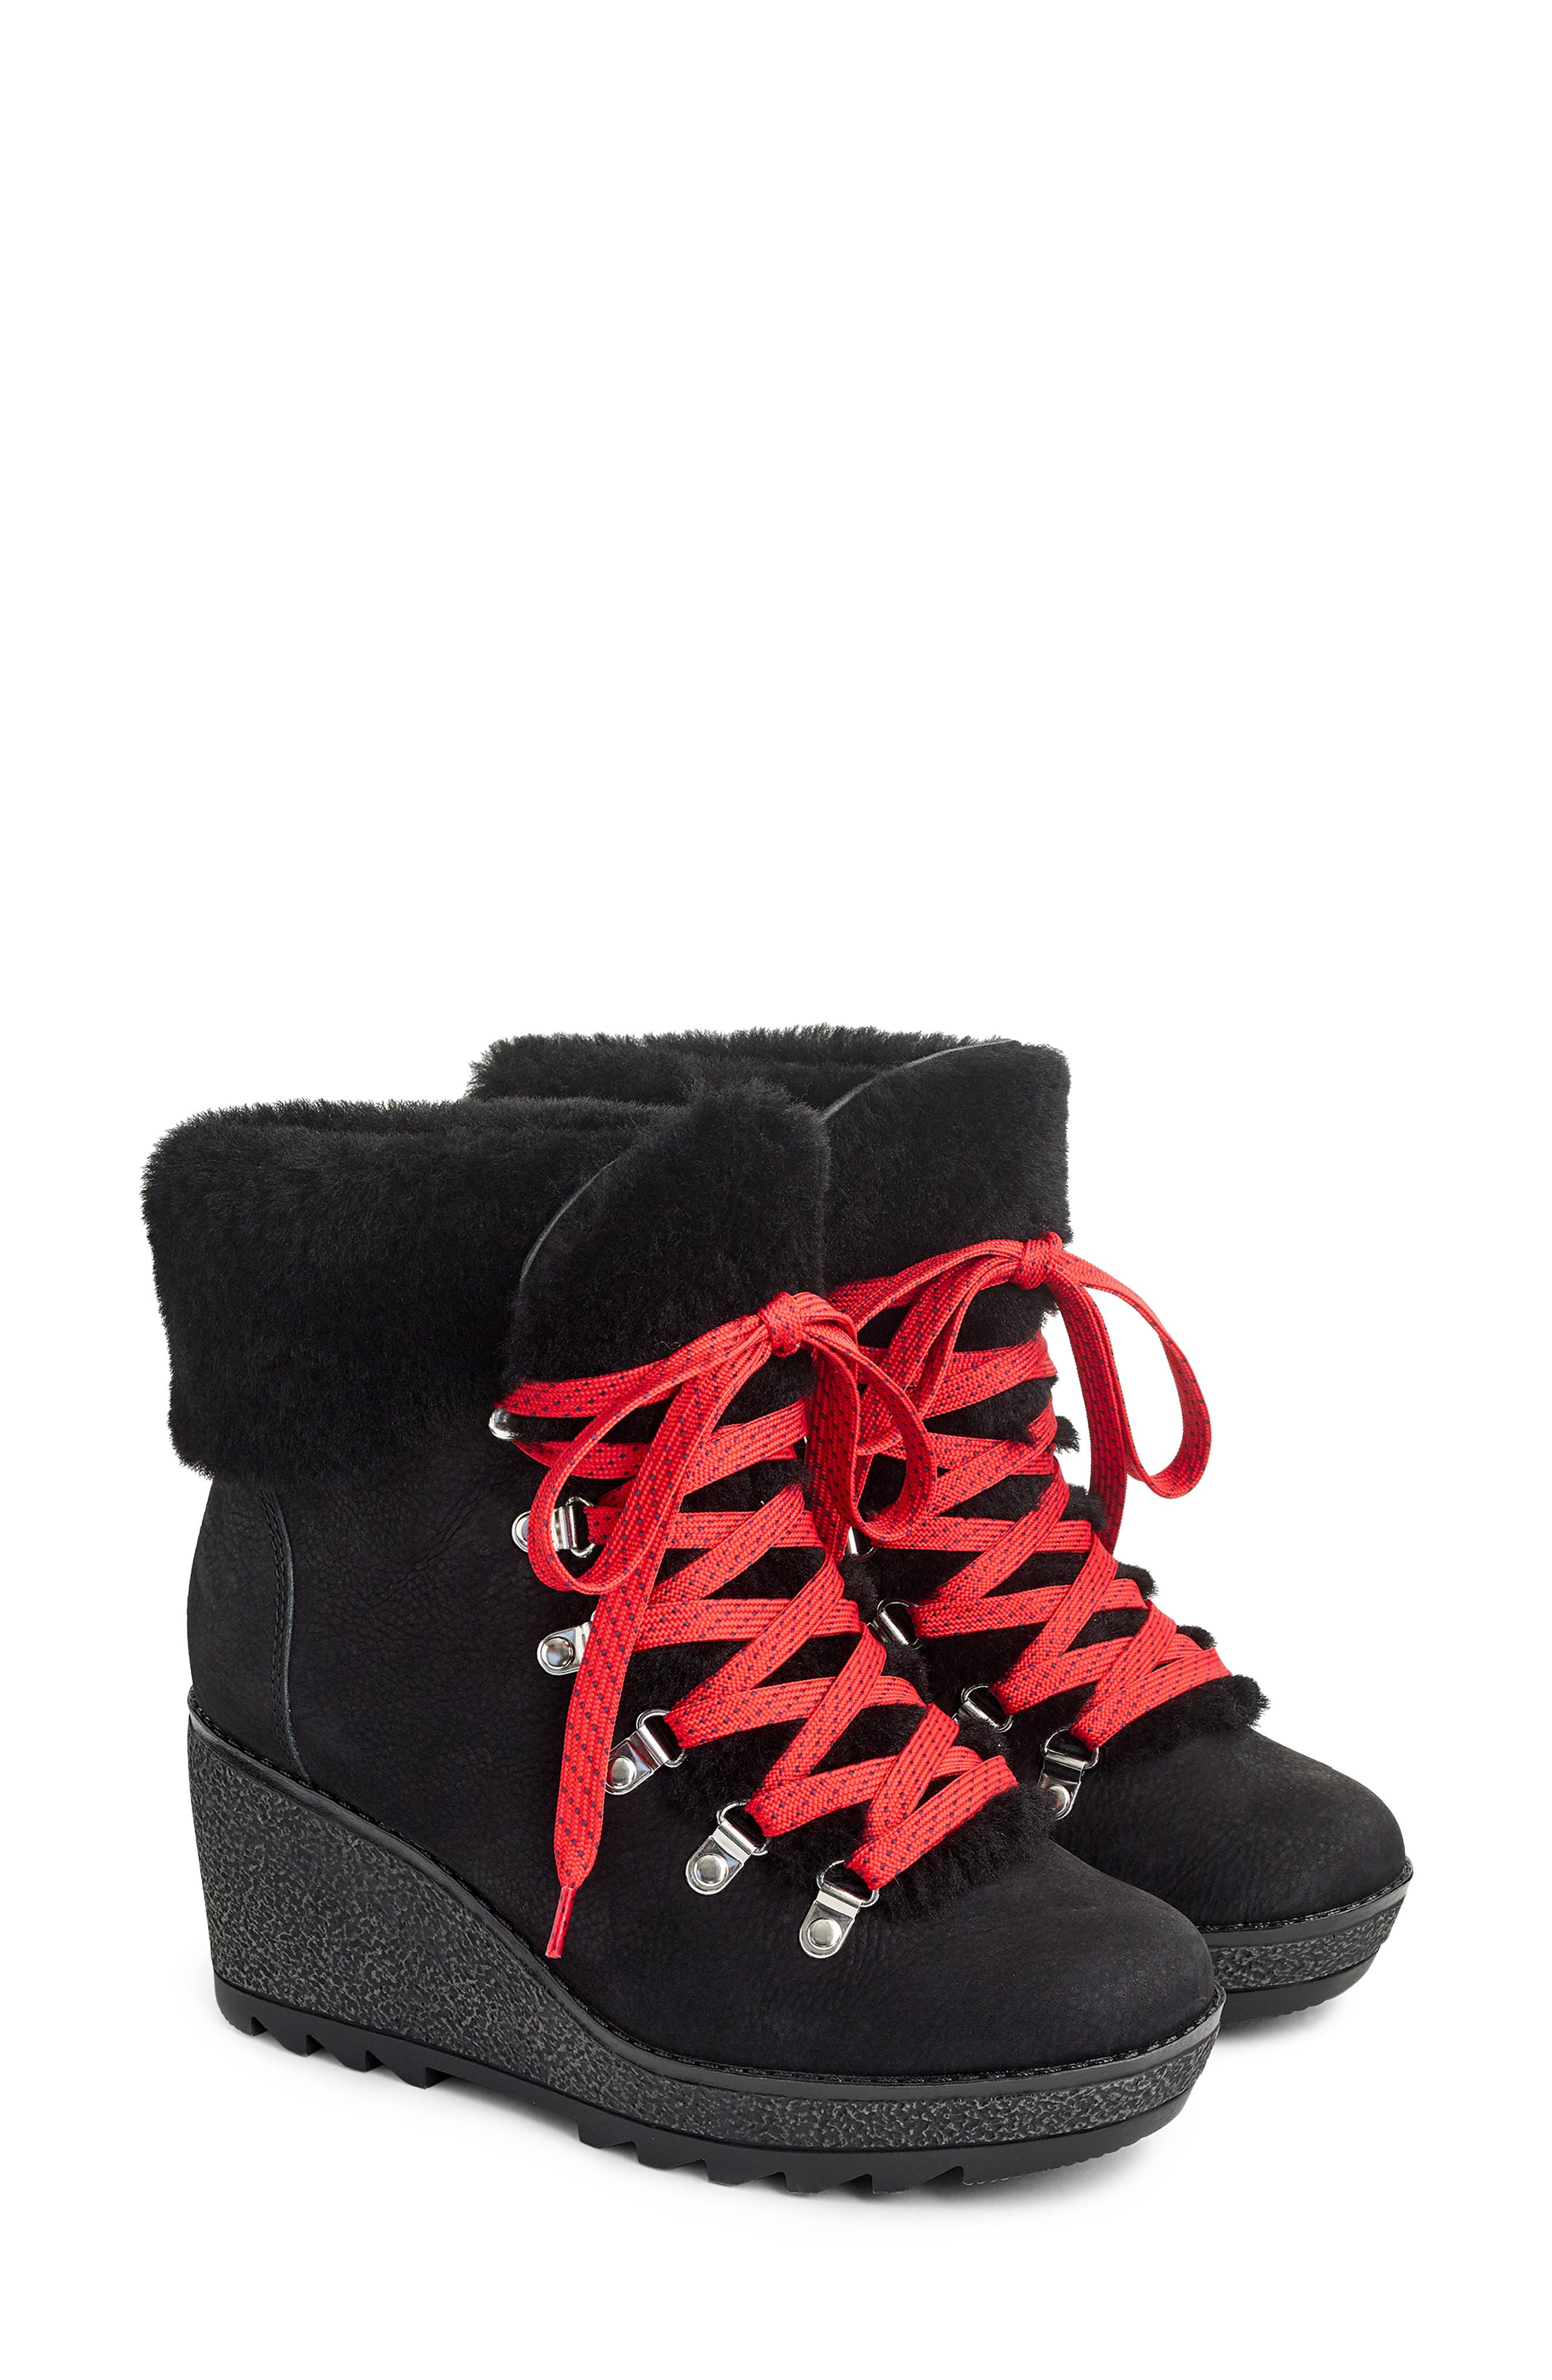 Nordic Wedge Bootie,                             Alternate thumbnail 3, color,                             BLACK LEATHER